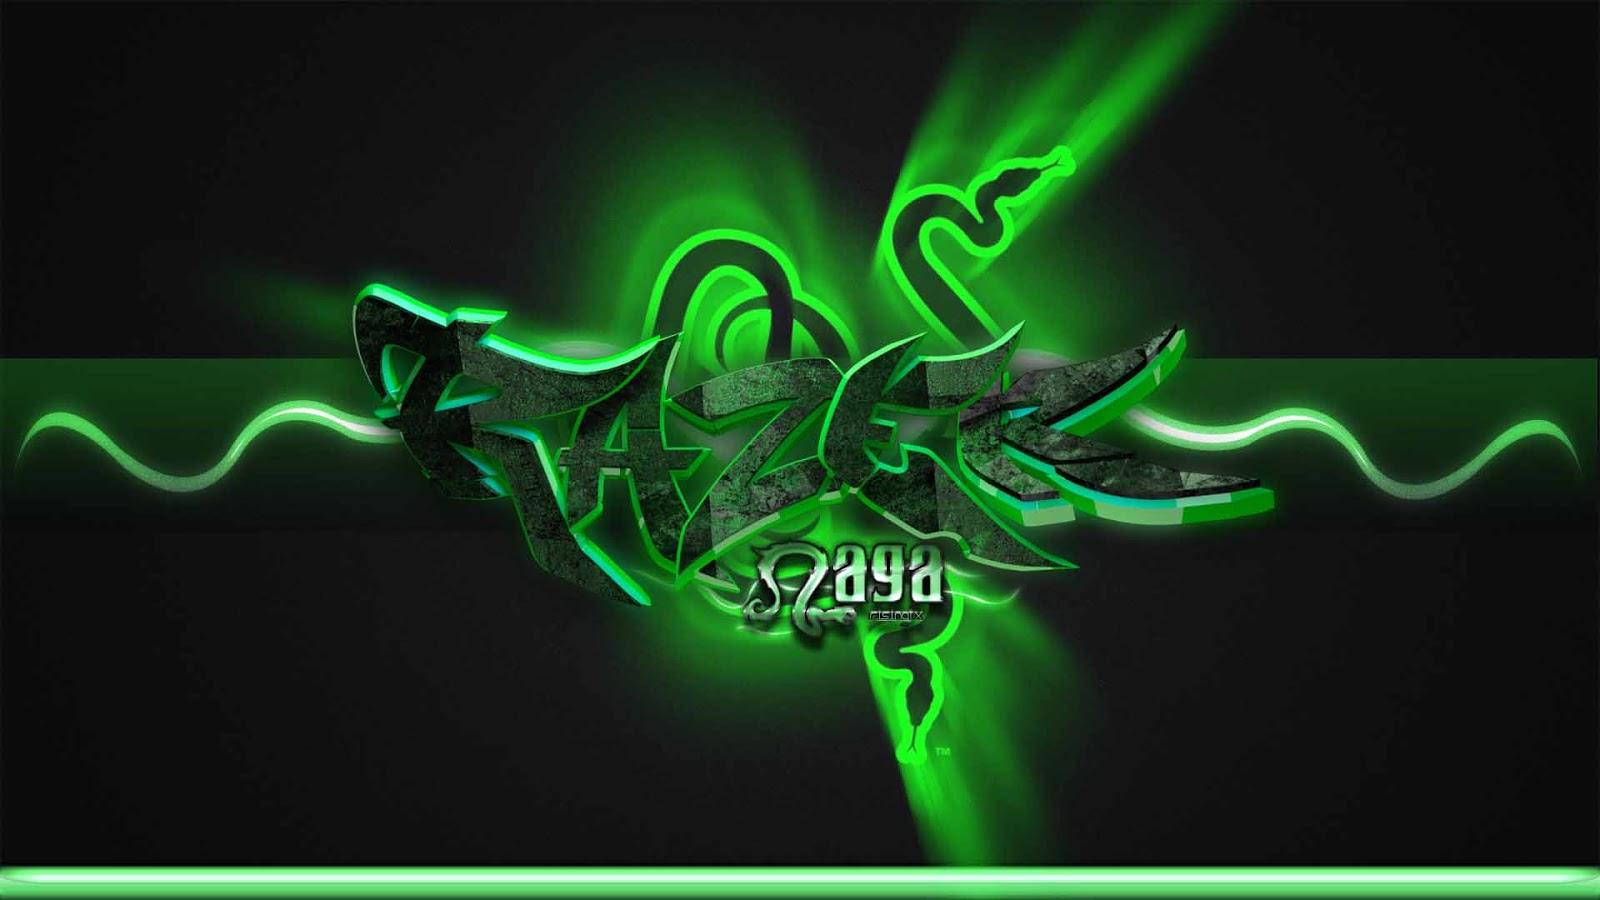 Hd razer wallpapers wallpapersafari for Where to find wallpaper